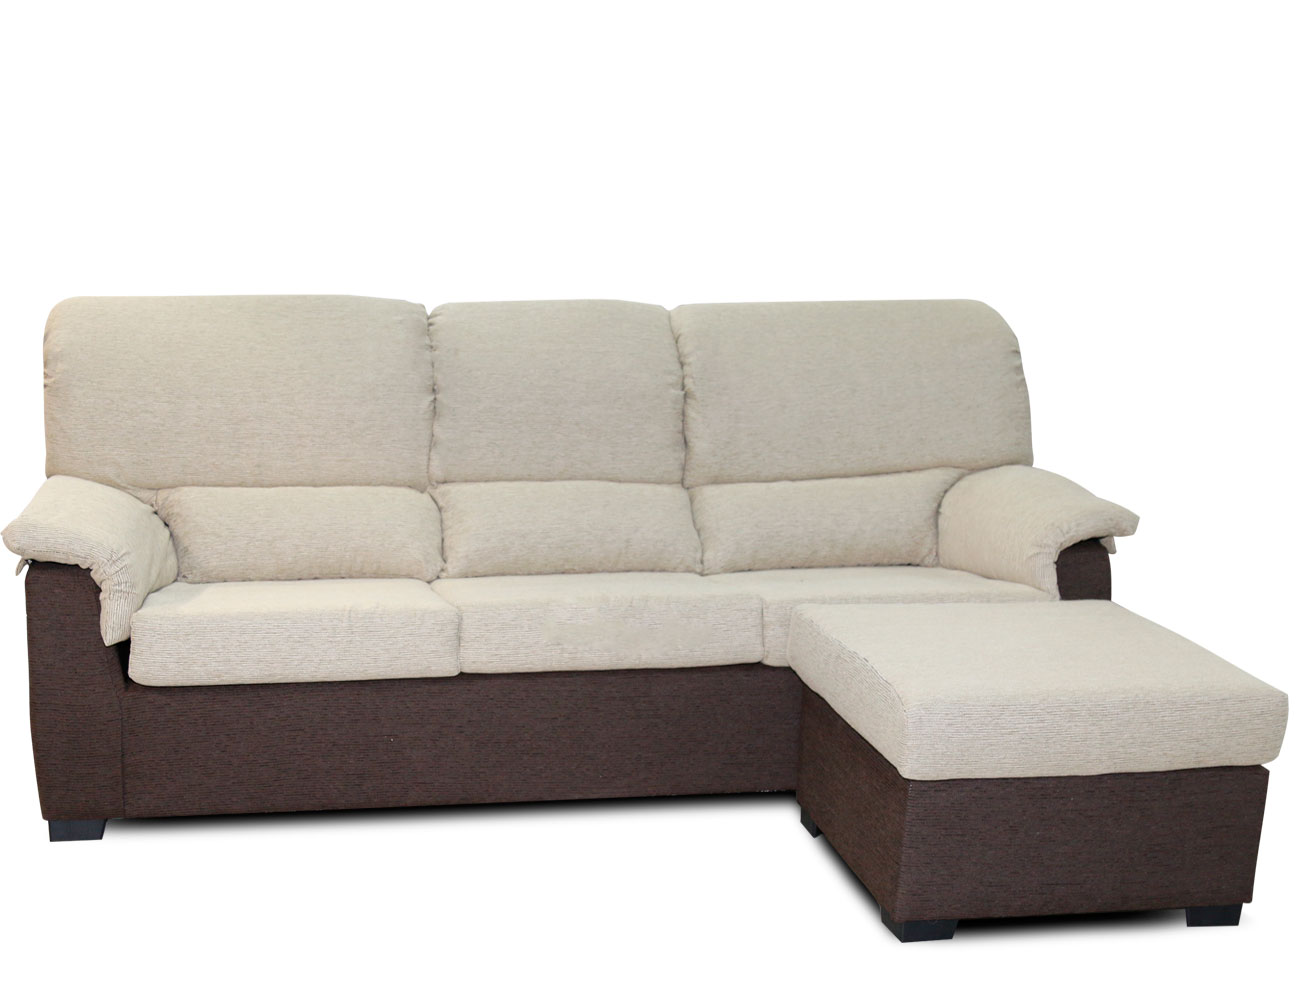 Sof chaiselongue barato con puf reversible 15285 for Mueble barato online